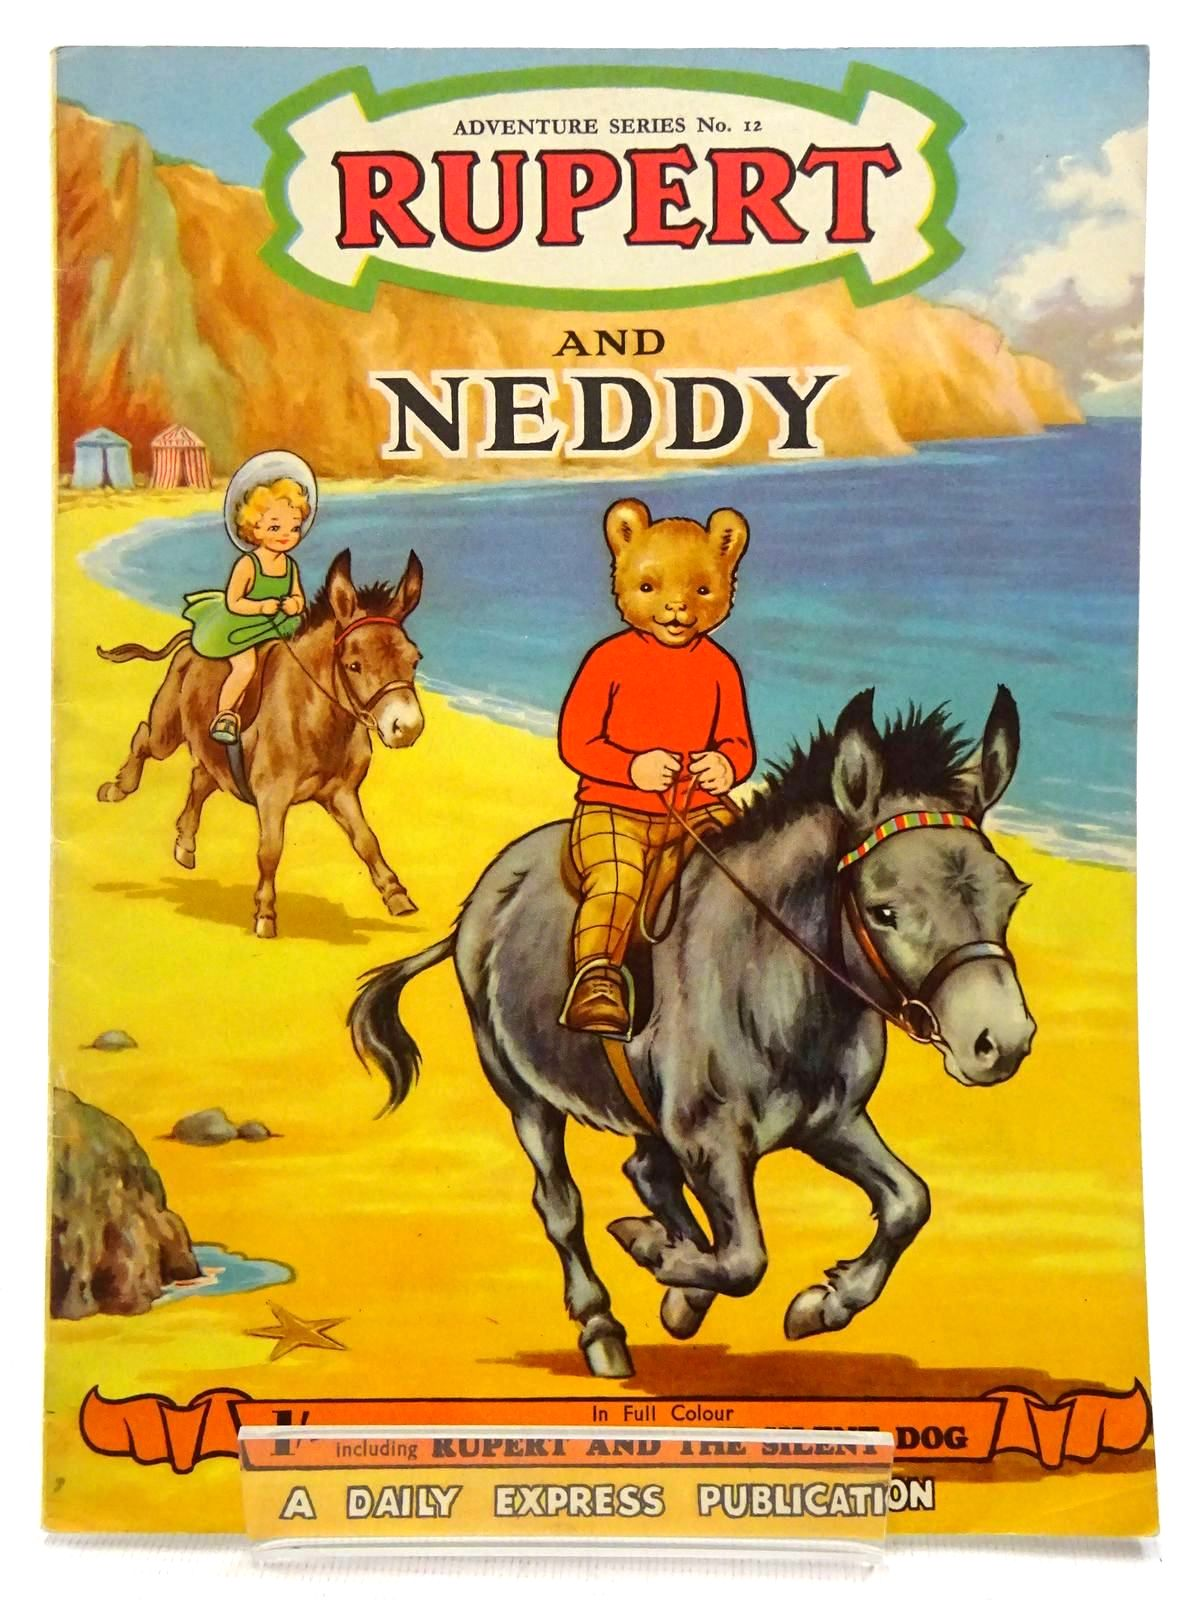 Photo of RUPERT ADVENTURE SERIES No. 12 - RUPERT AND NEDDY written by Bestall, Alfred illustrated by Ash, Enid Bestall, Alfred published by Daily Express (STOCK CODE: 2128599)  for sale by Stella & Rose's Books